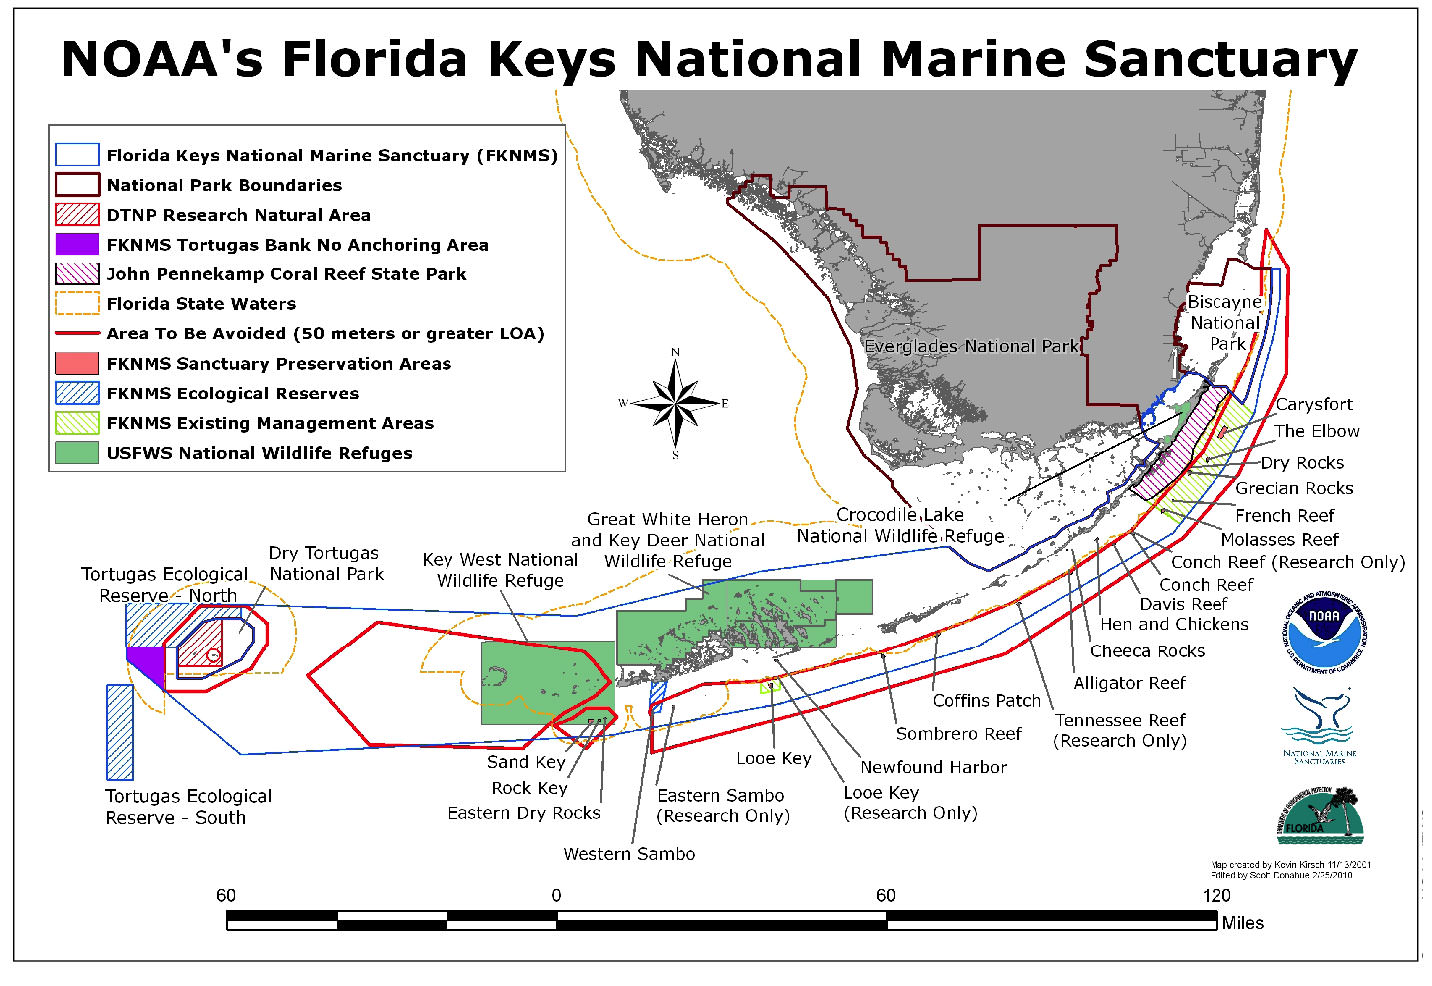 Florida Keys 2011 Condition Report